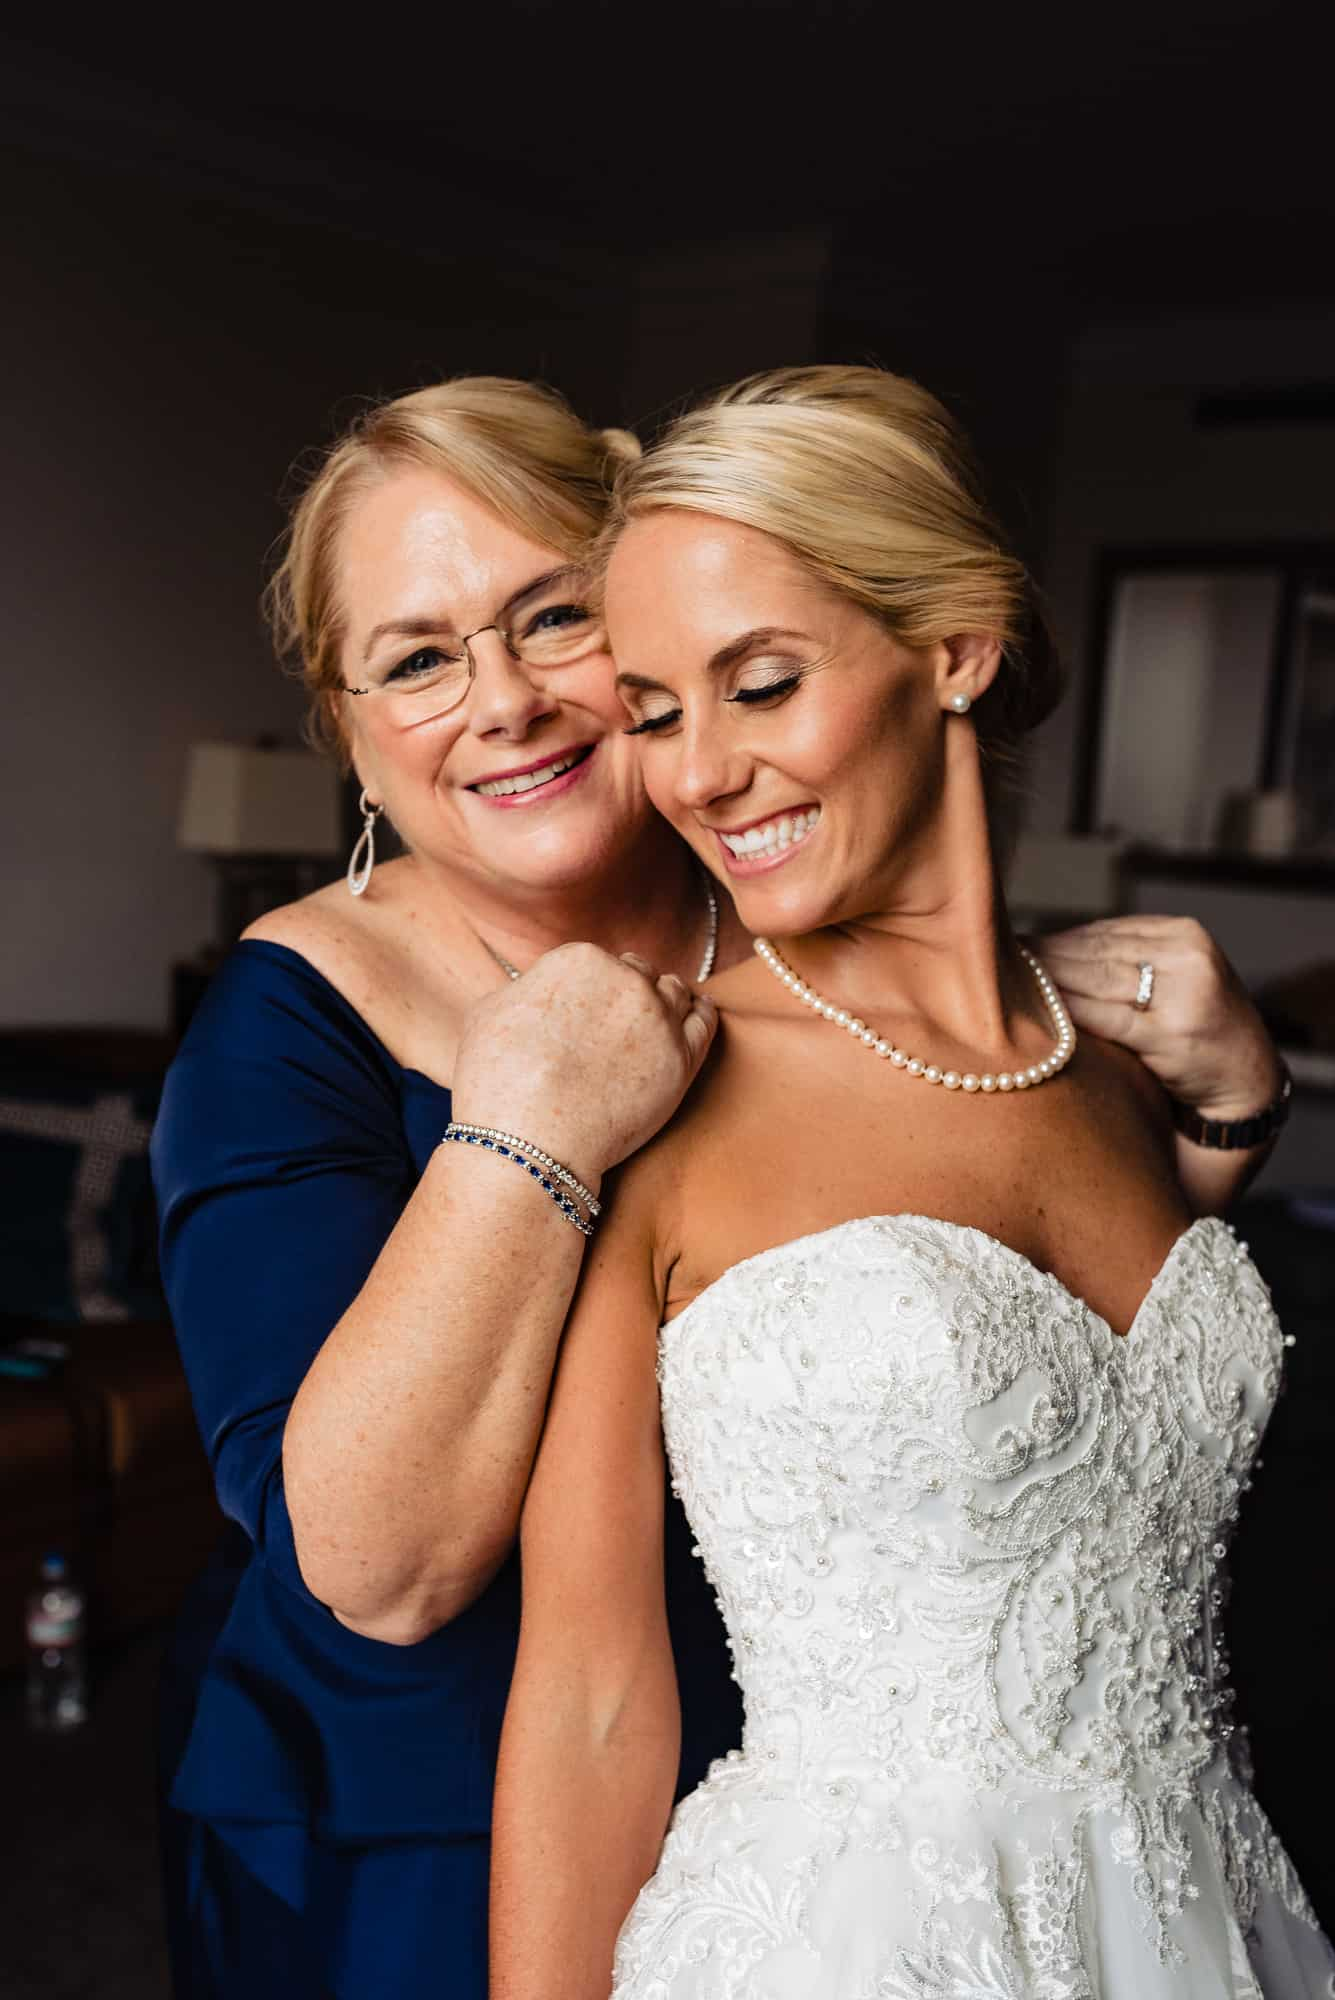 Ritz Carlton Philadelphia Wedding|mother of the bride hugging bride